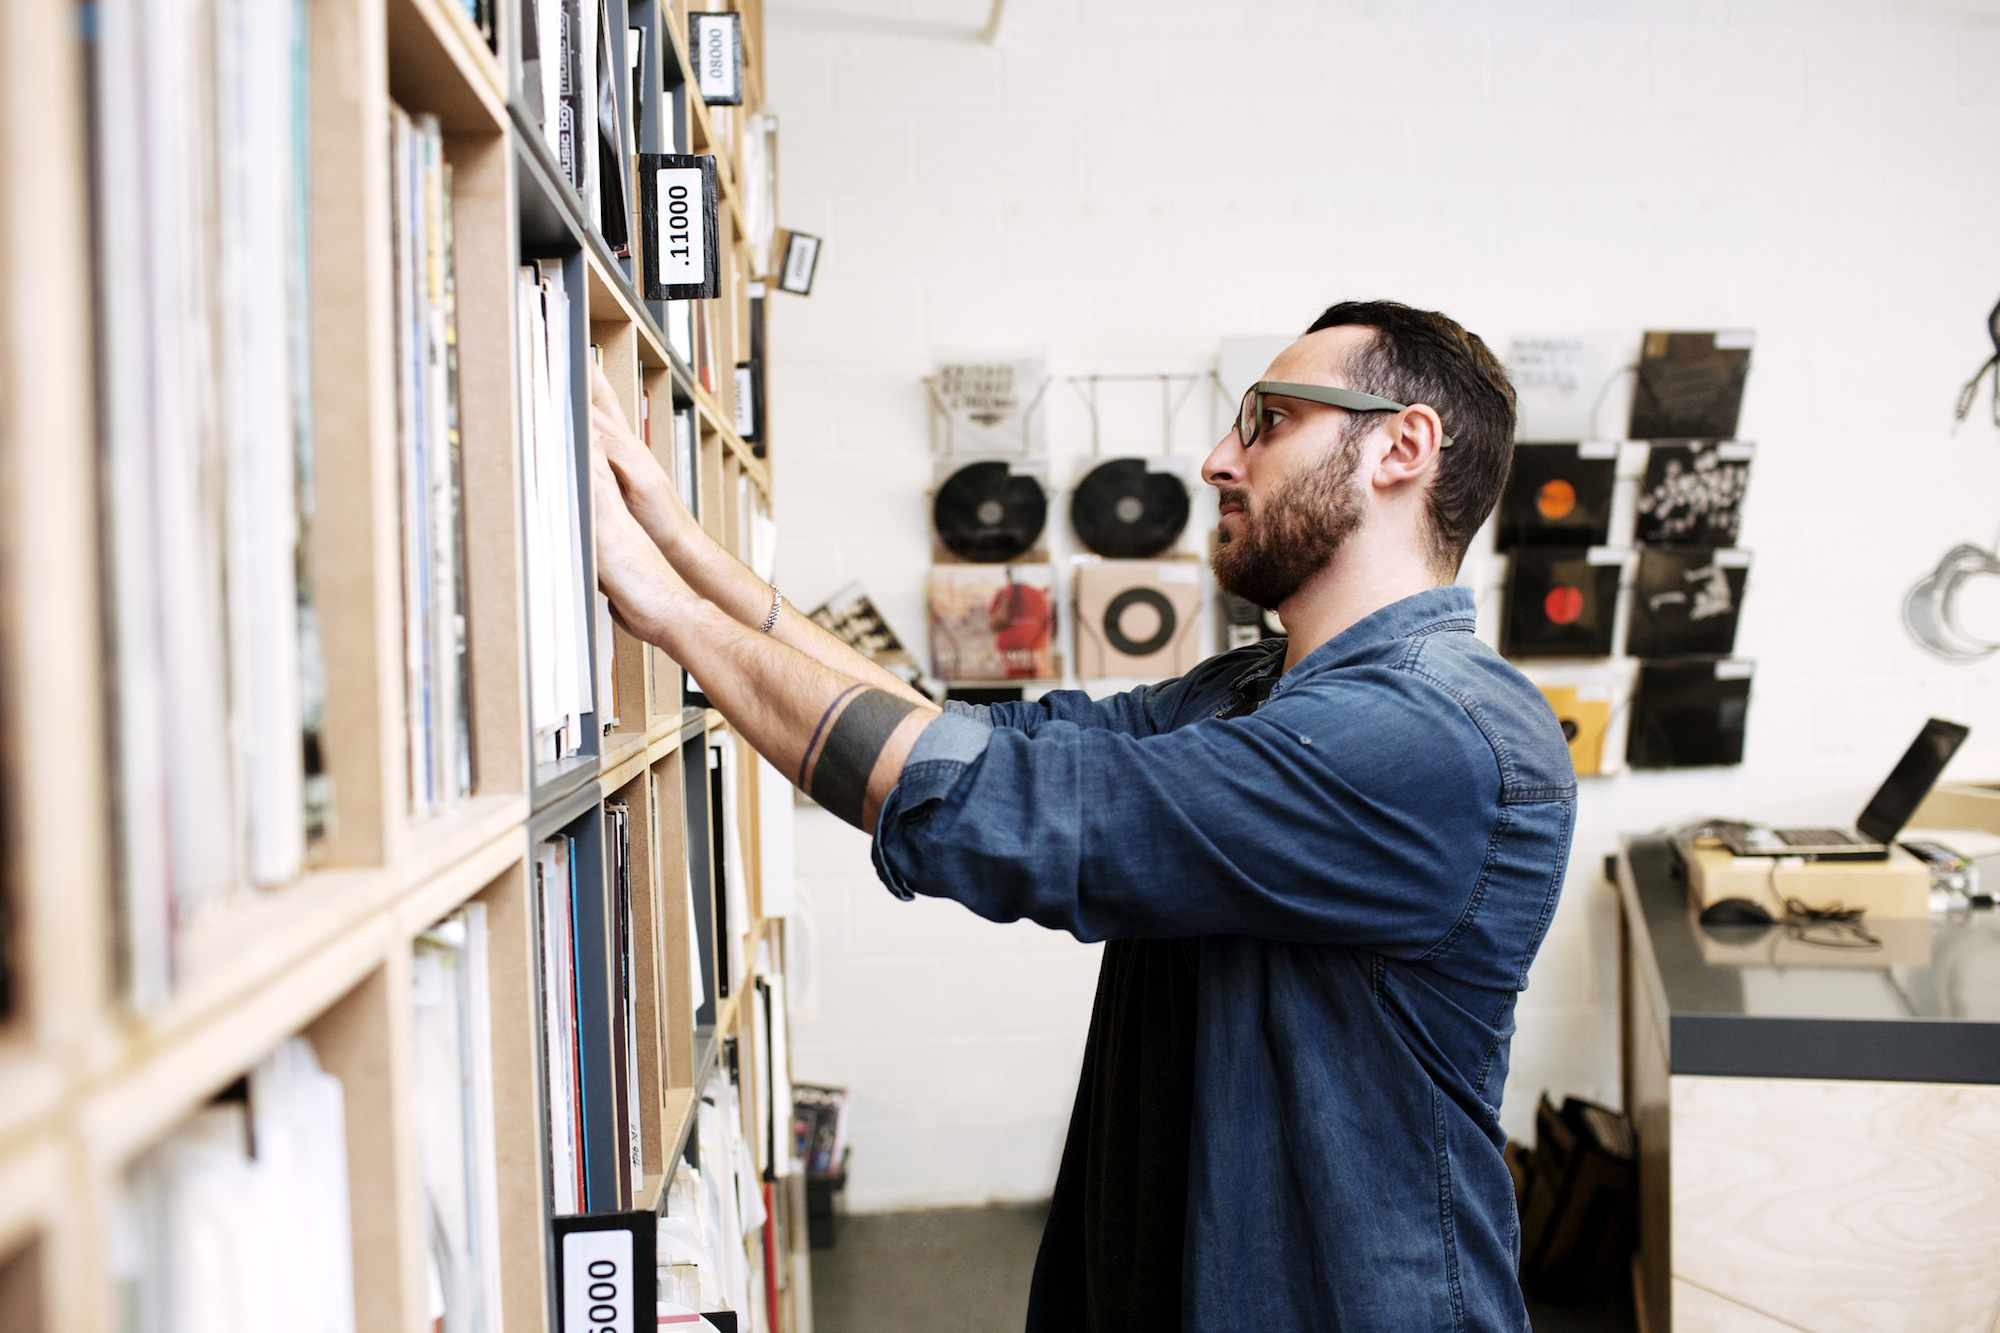 a man browsing in a record store